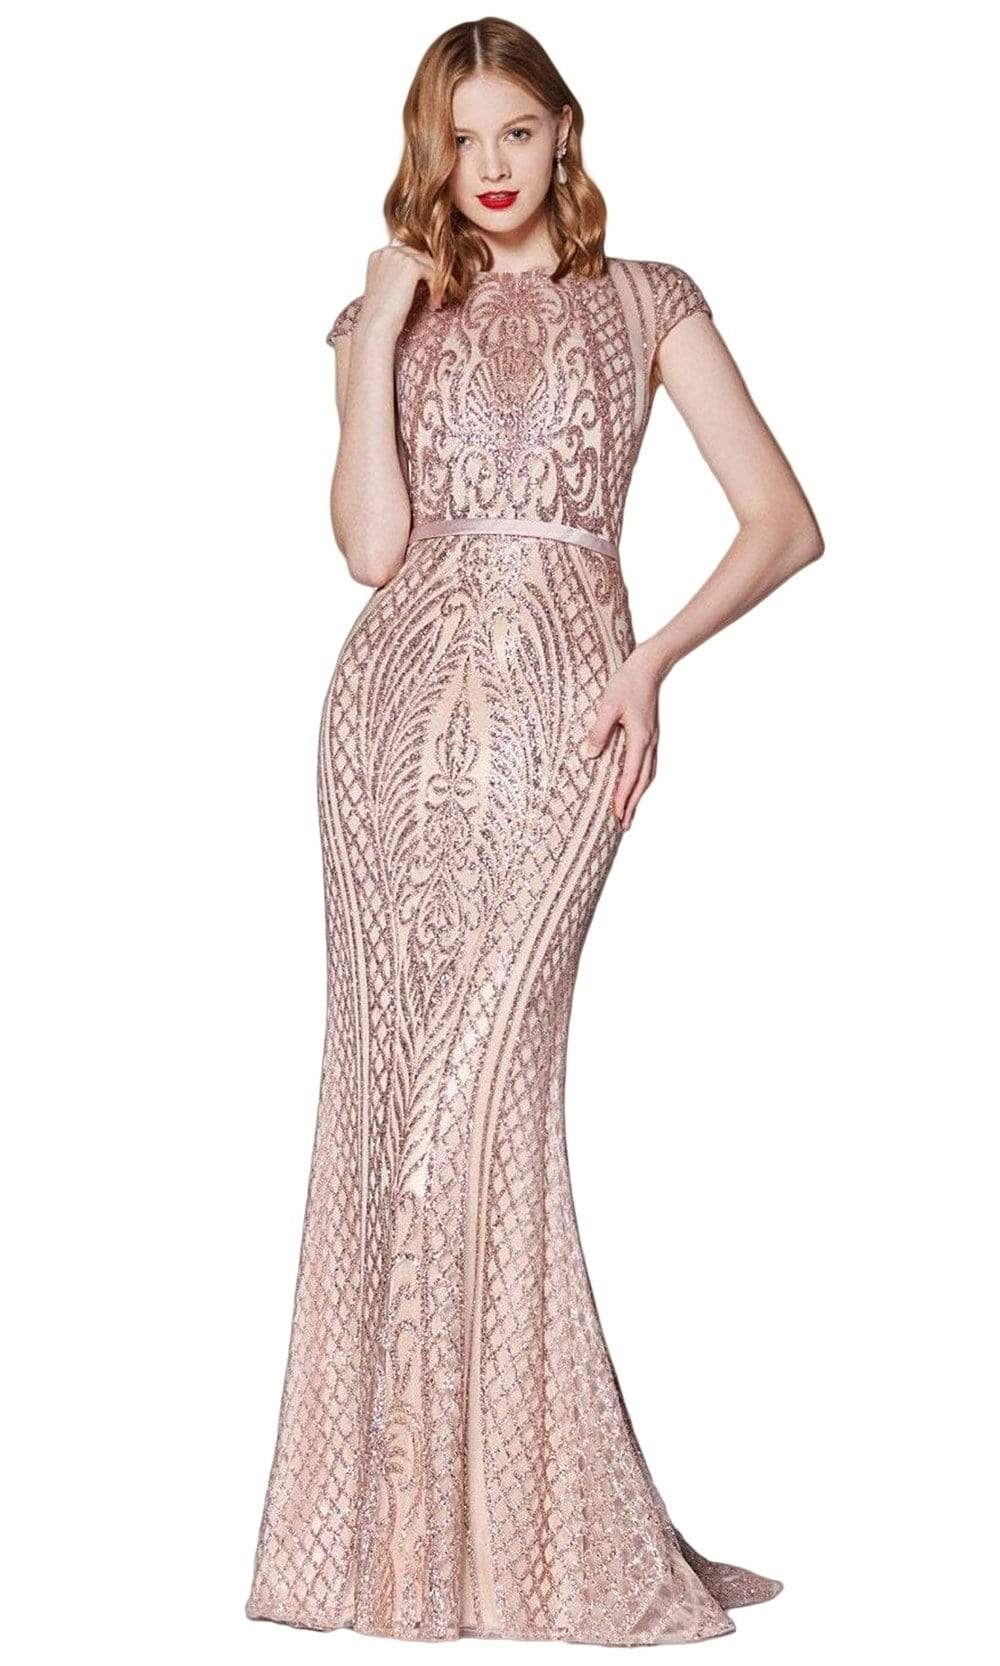 Cinderella Divine - J768 Sequined Cap Sleeve Trumpet Dress In Pink and Gold